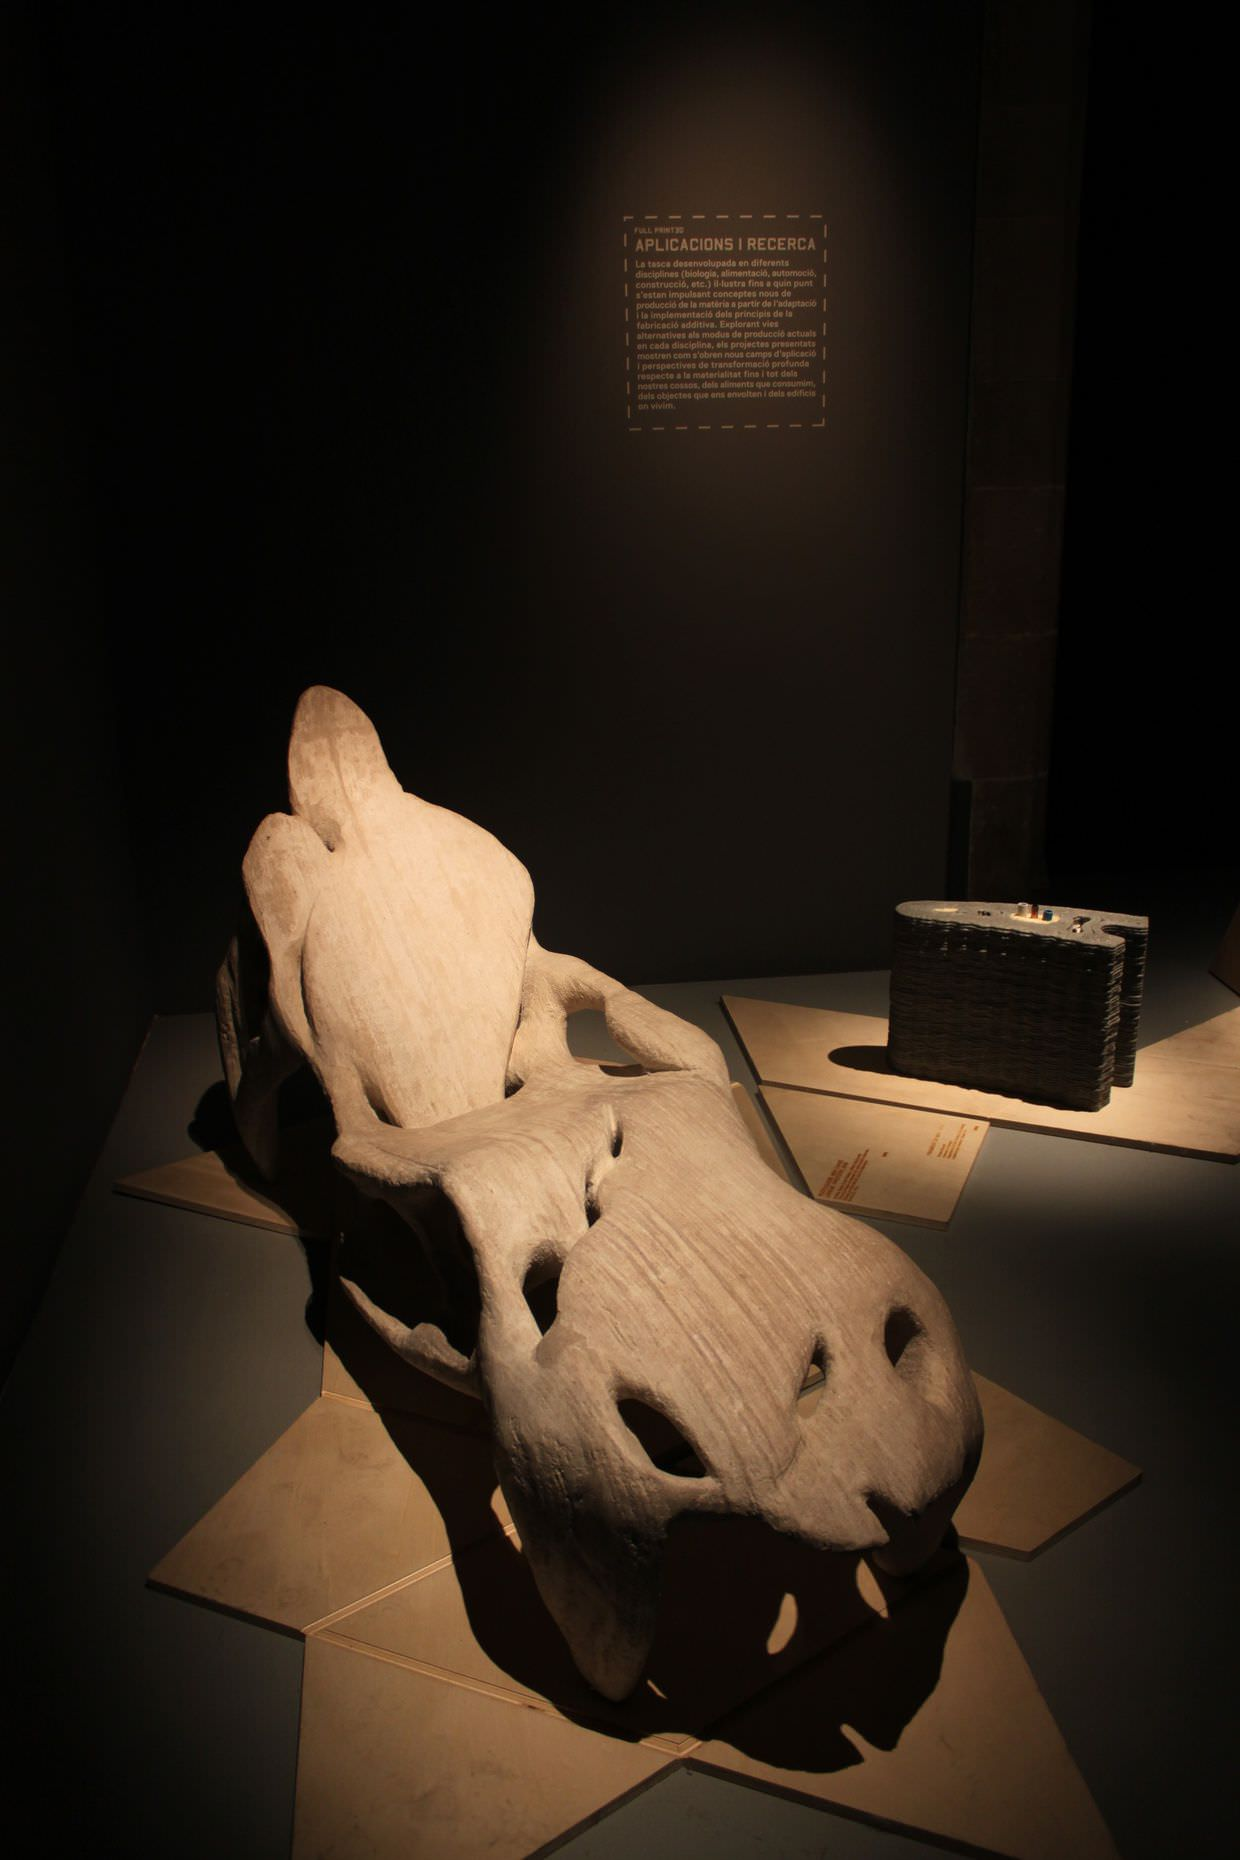 A comfortable looking 3D printed concrete chair